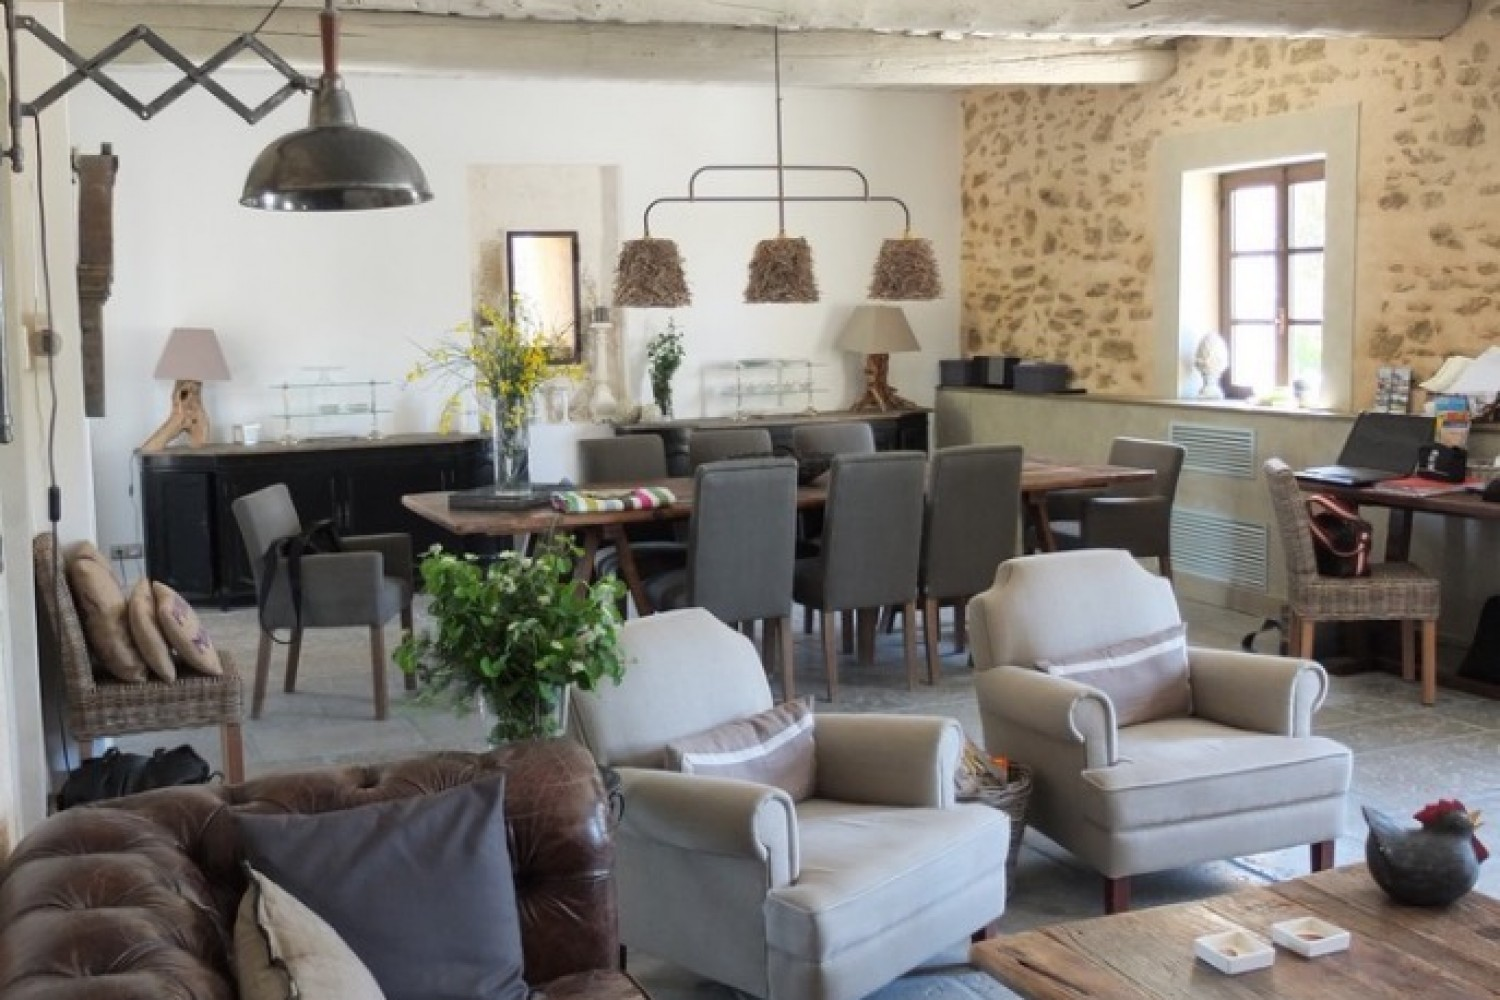 La Bergerie de Nano - Bed & Breakfast Beaumes de venise